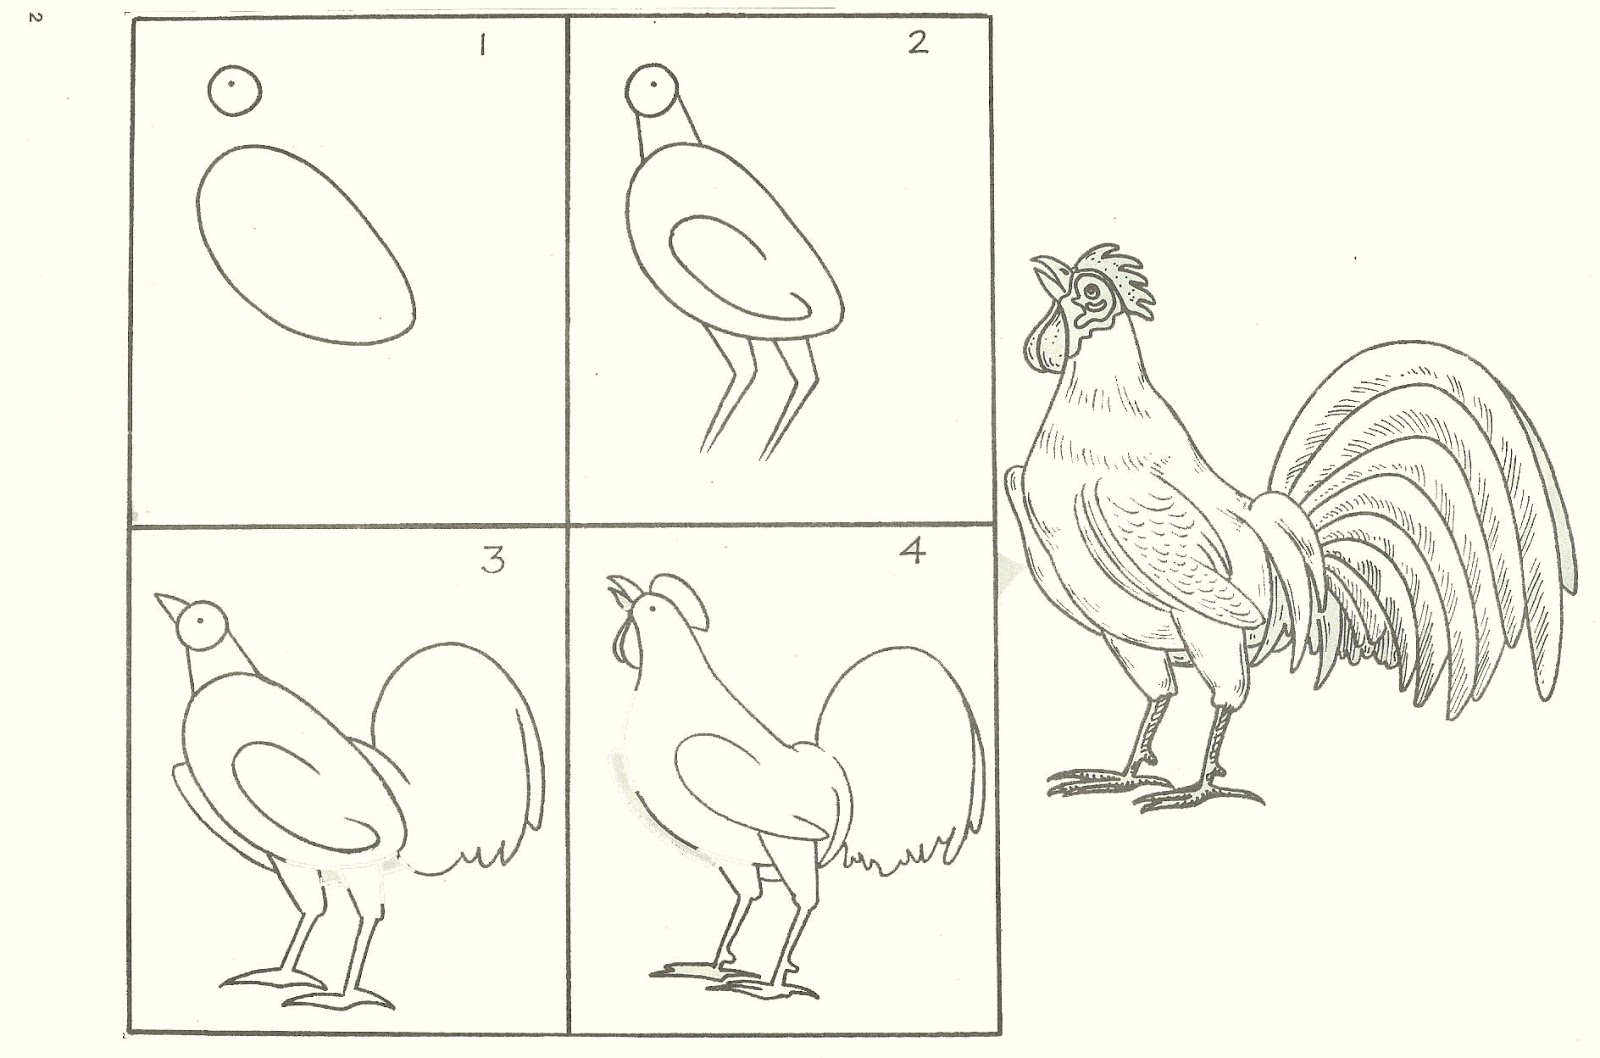 studentsdrawing animal step by step easy outline drawing bird